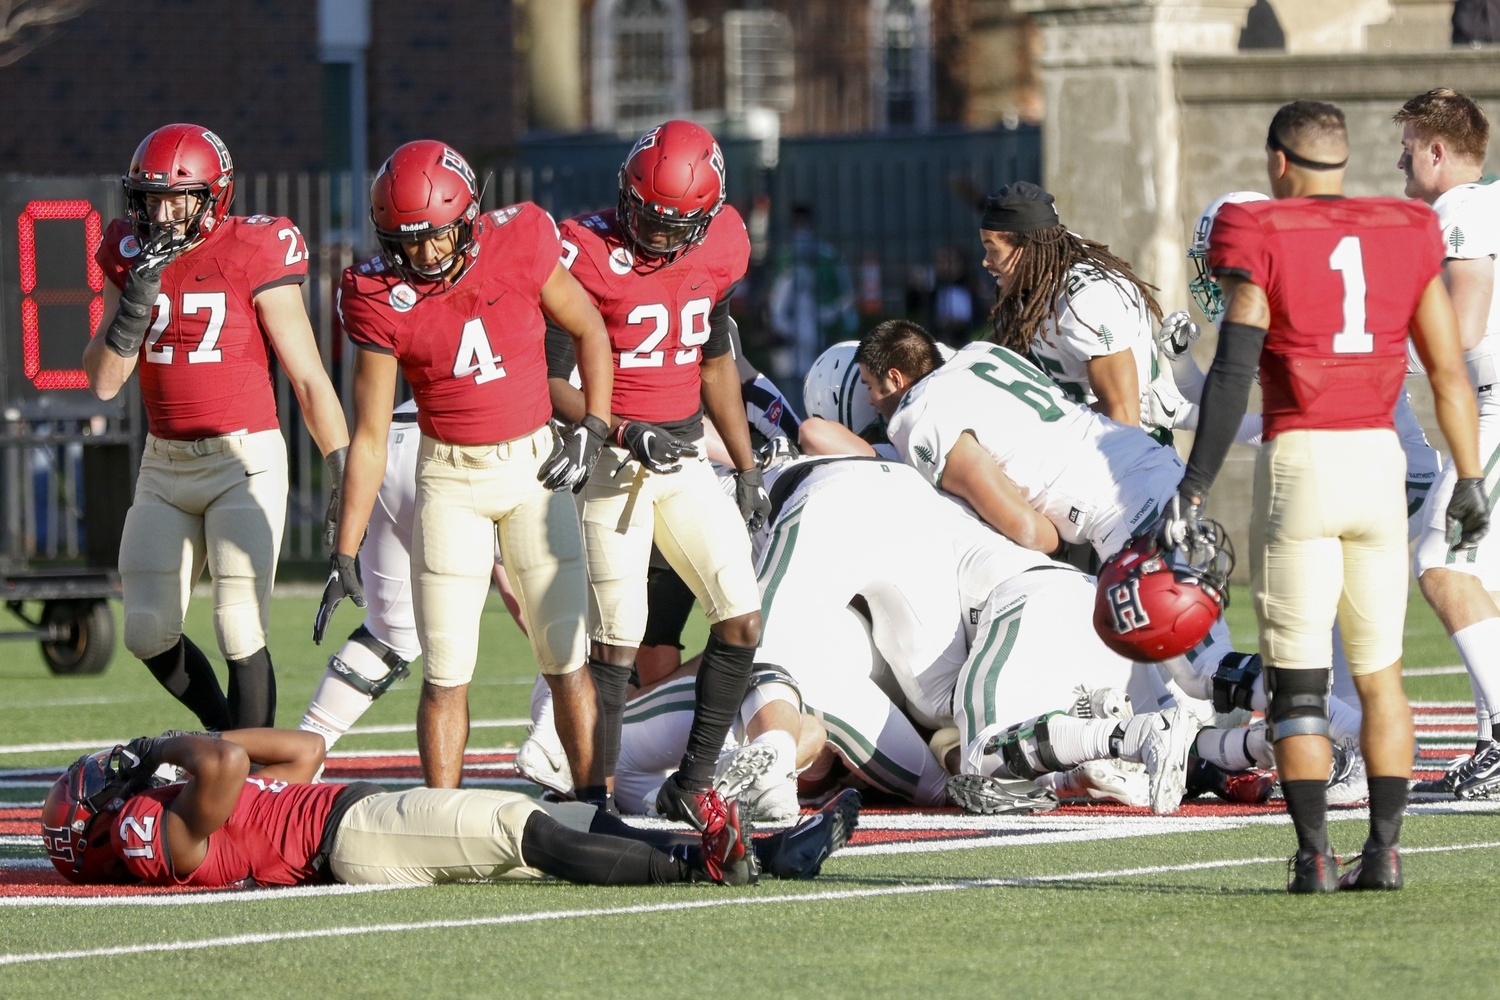 Junior defensive back Isaiah Wingfield lays on the ground after Dartmouth's, final second, Hail Mary attempt is successful. The loss ends Harvard's chances at an Ivy League title.